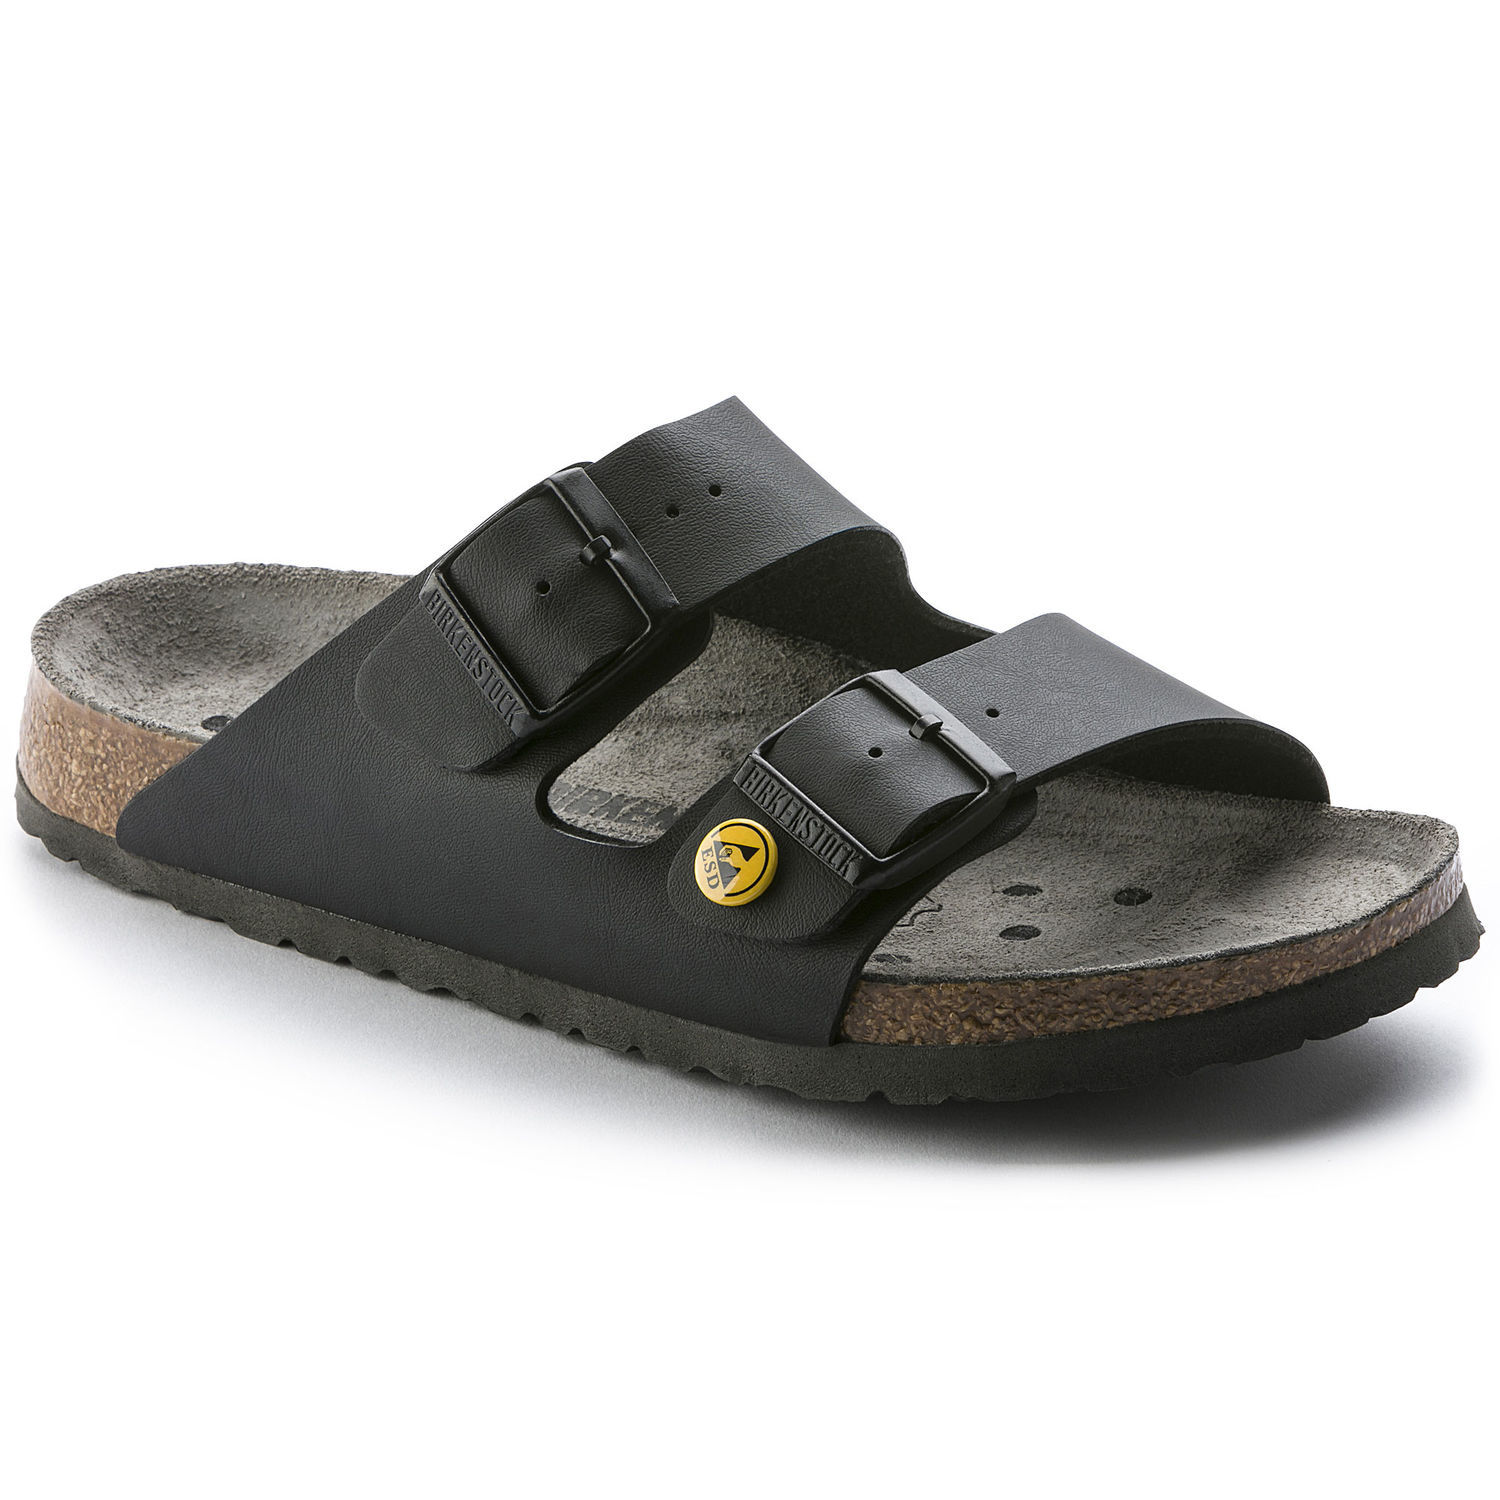 Image of   Sort Arizona ESD sandal fra Birkenstock - 37